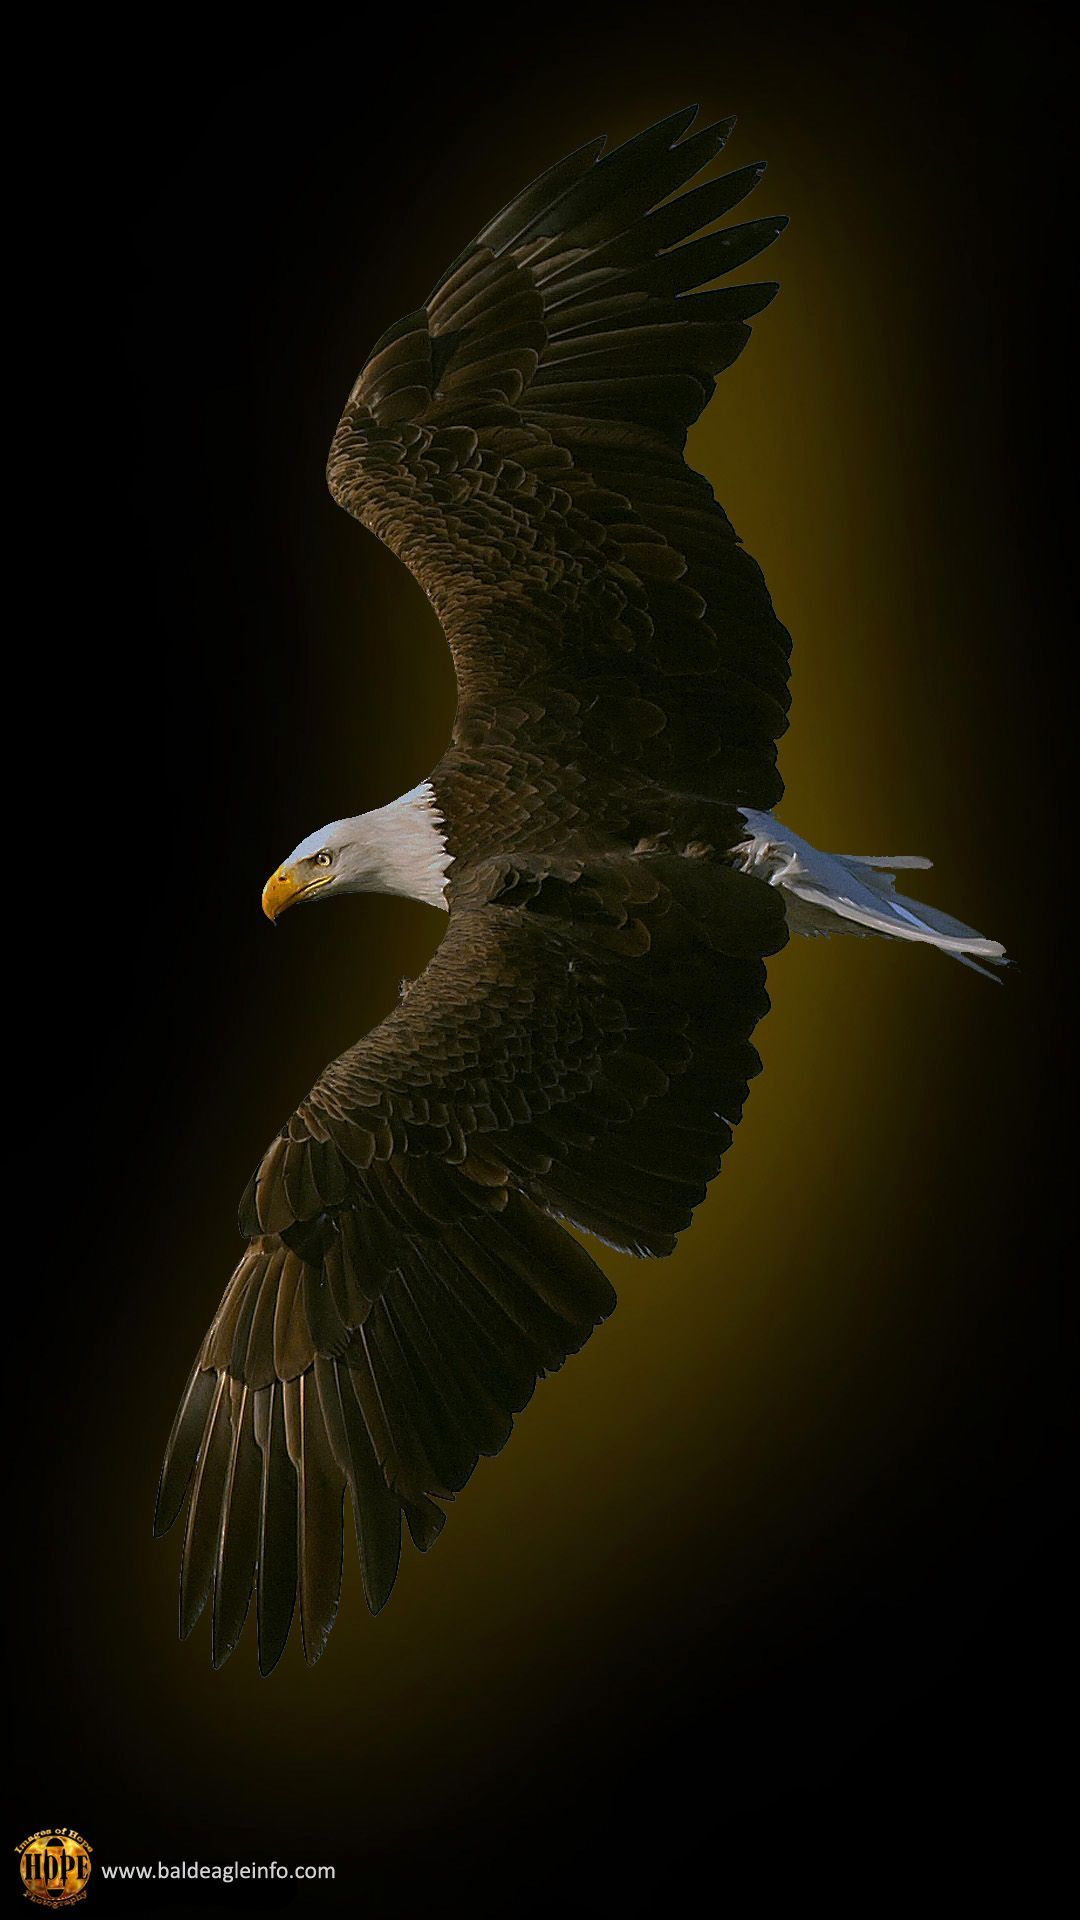 Eagle Astronaut Wallpapers Top Free Eagle Astronaut Backgrounds Wallpaperaccess